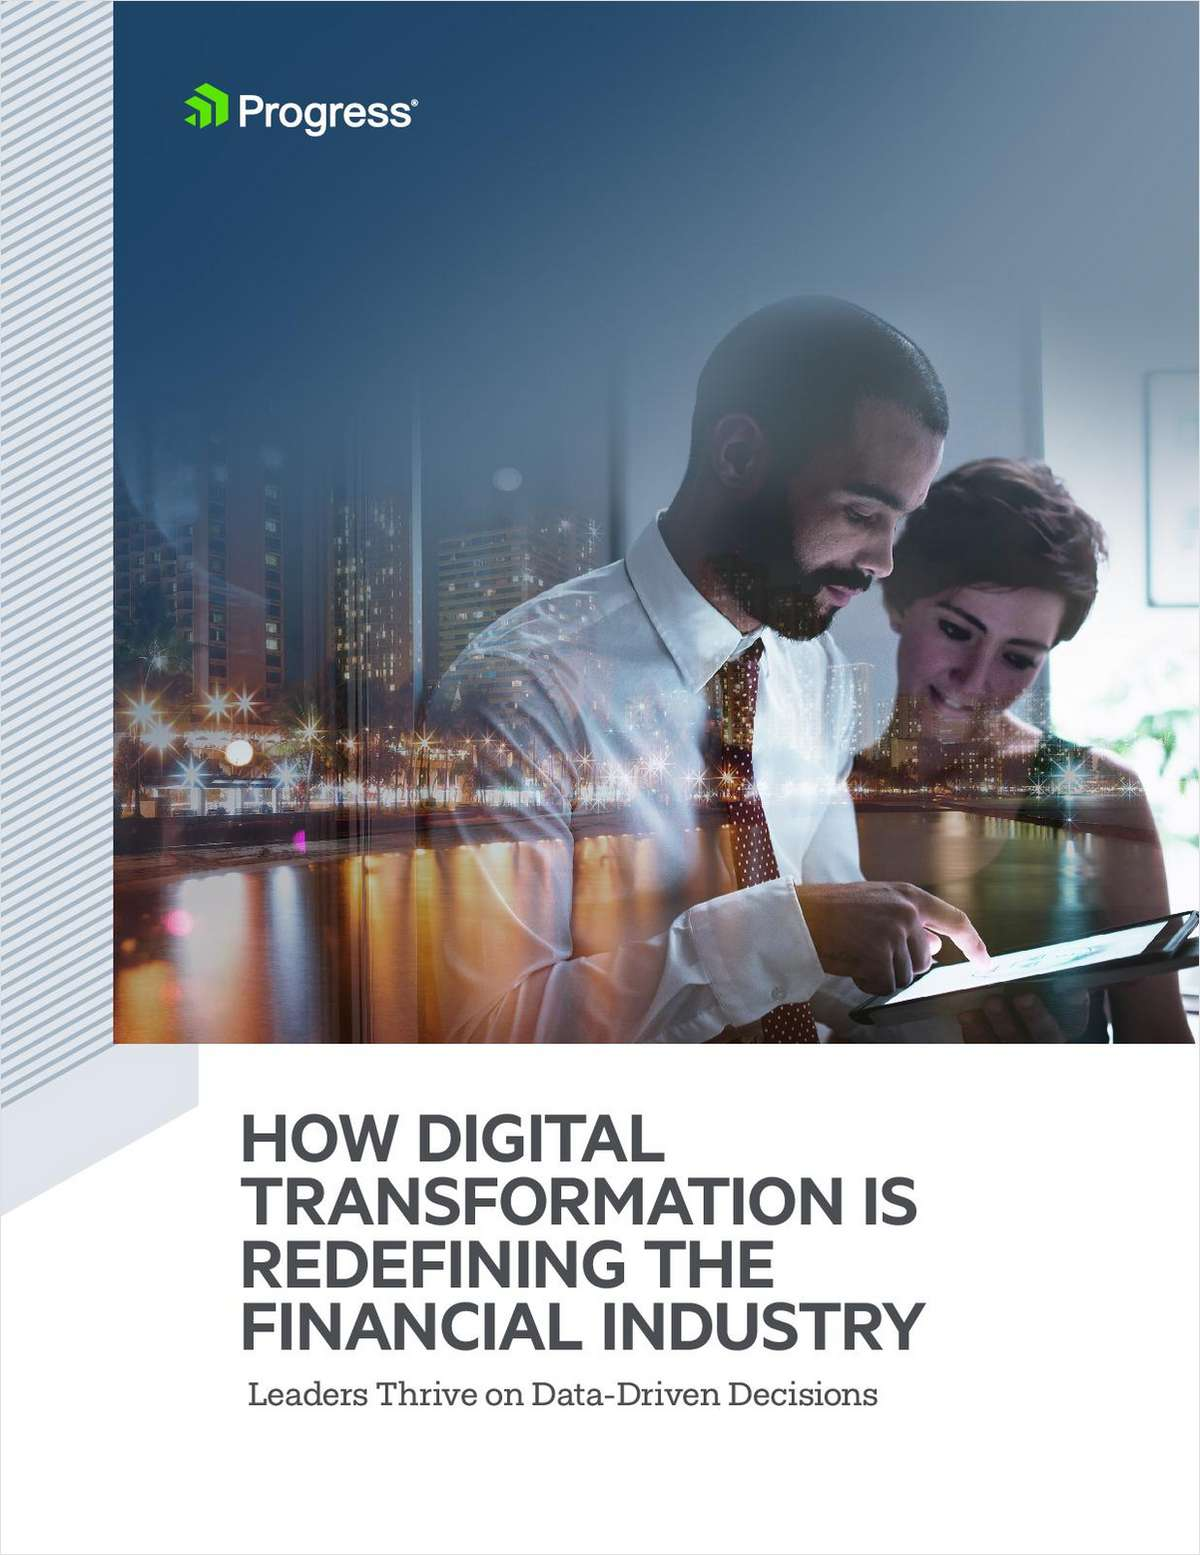 How Digital Transformation is Redefining the Financial Industry